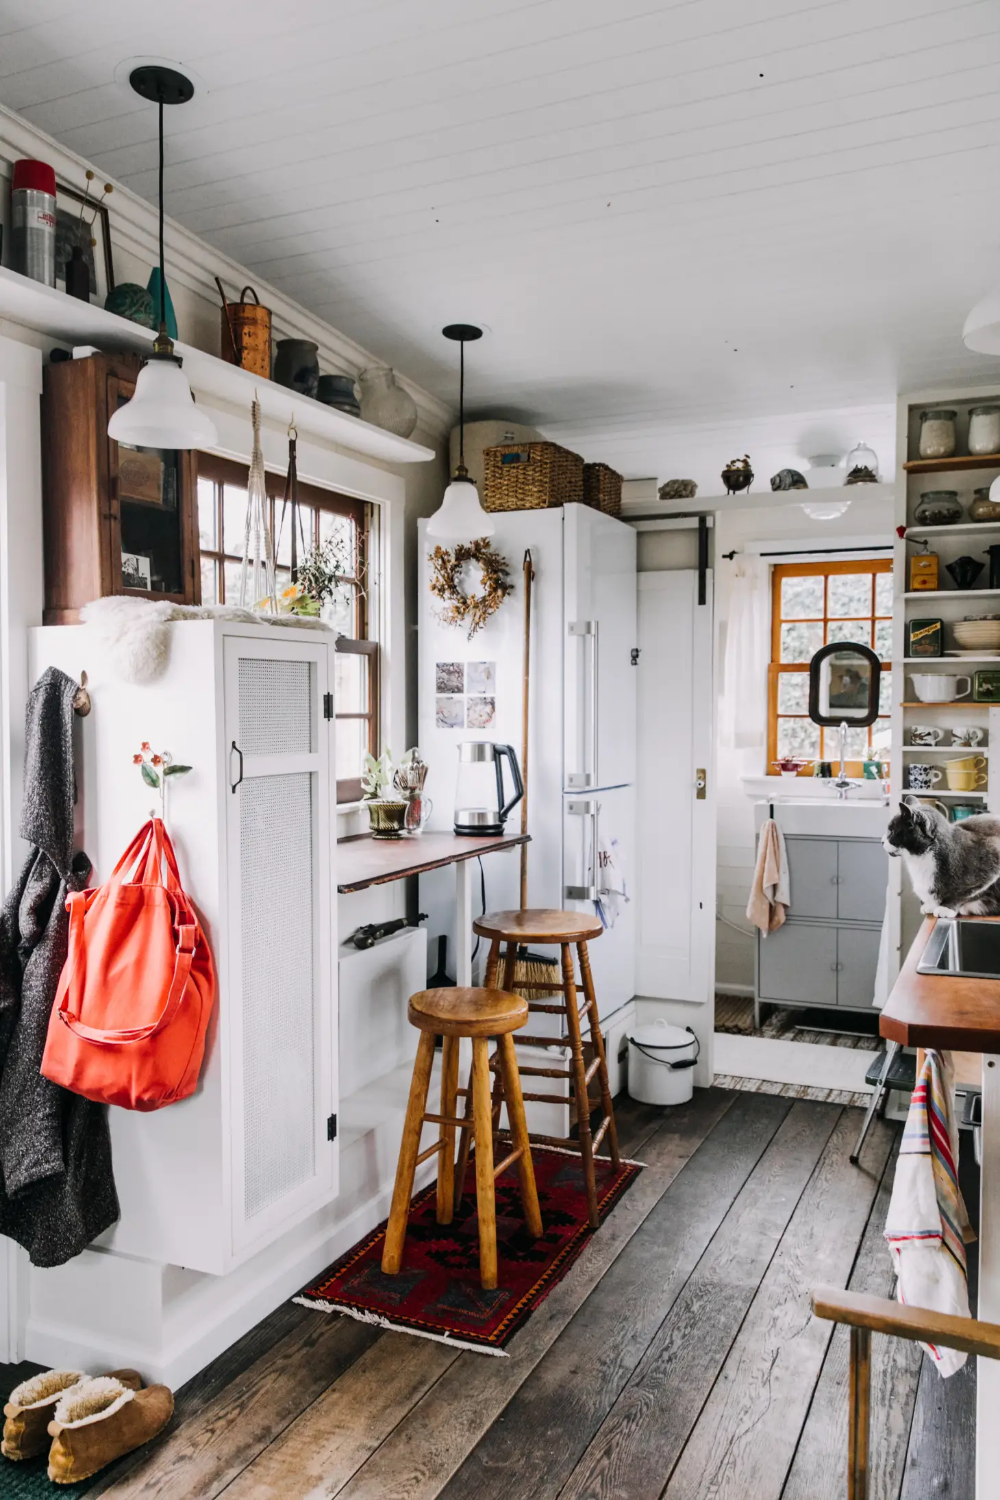 5 Big Organizing Lessons We Learned from This 160Square